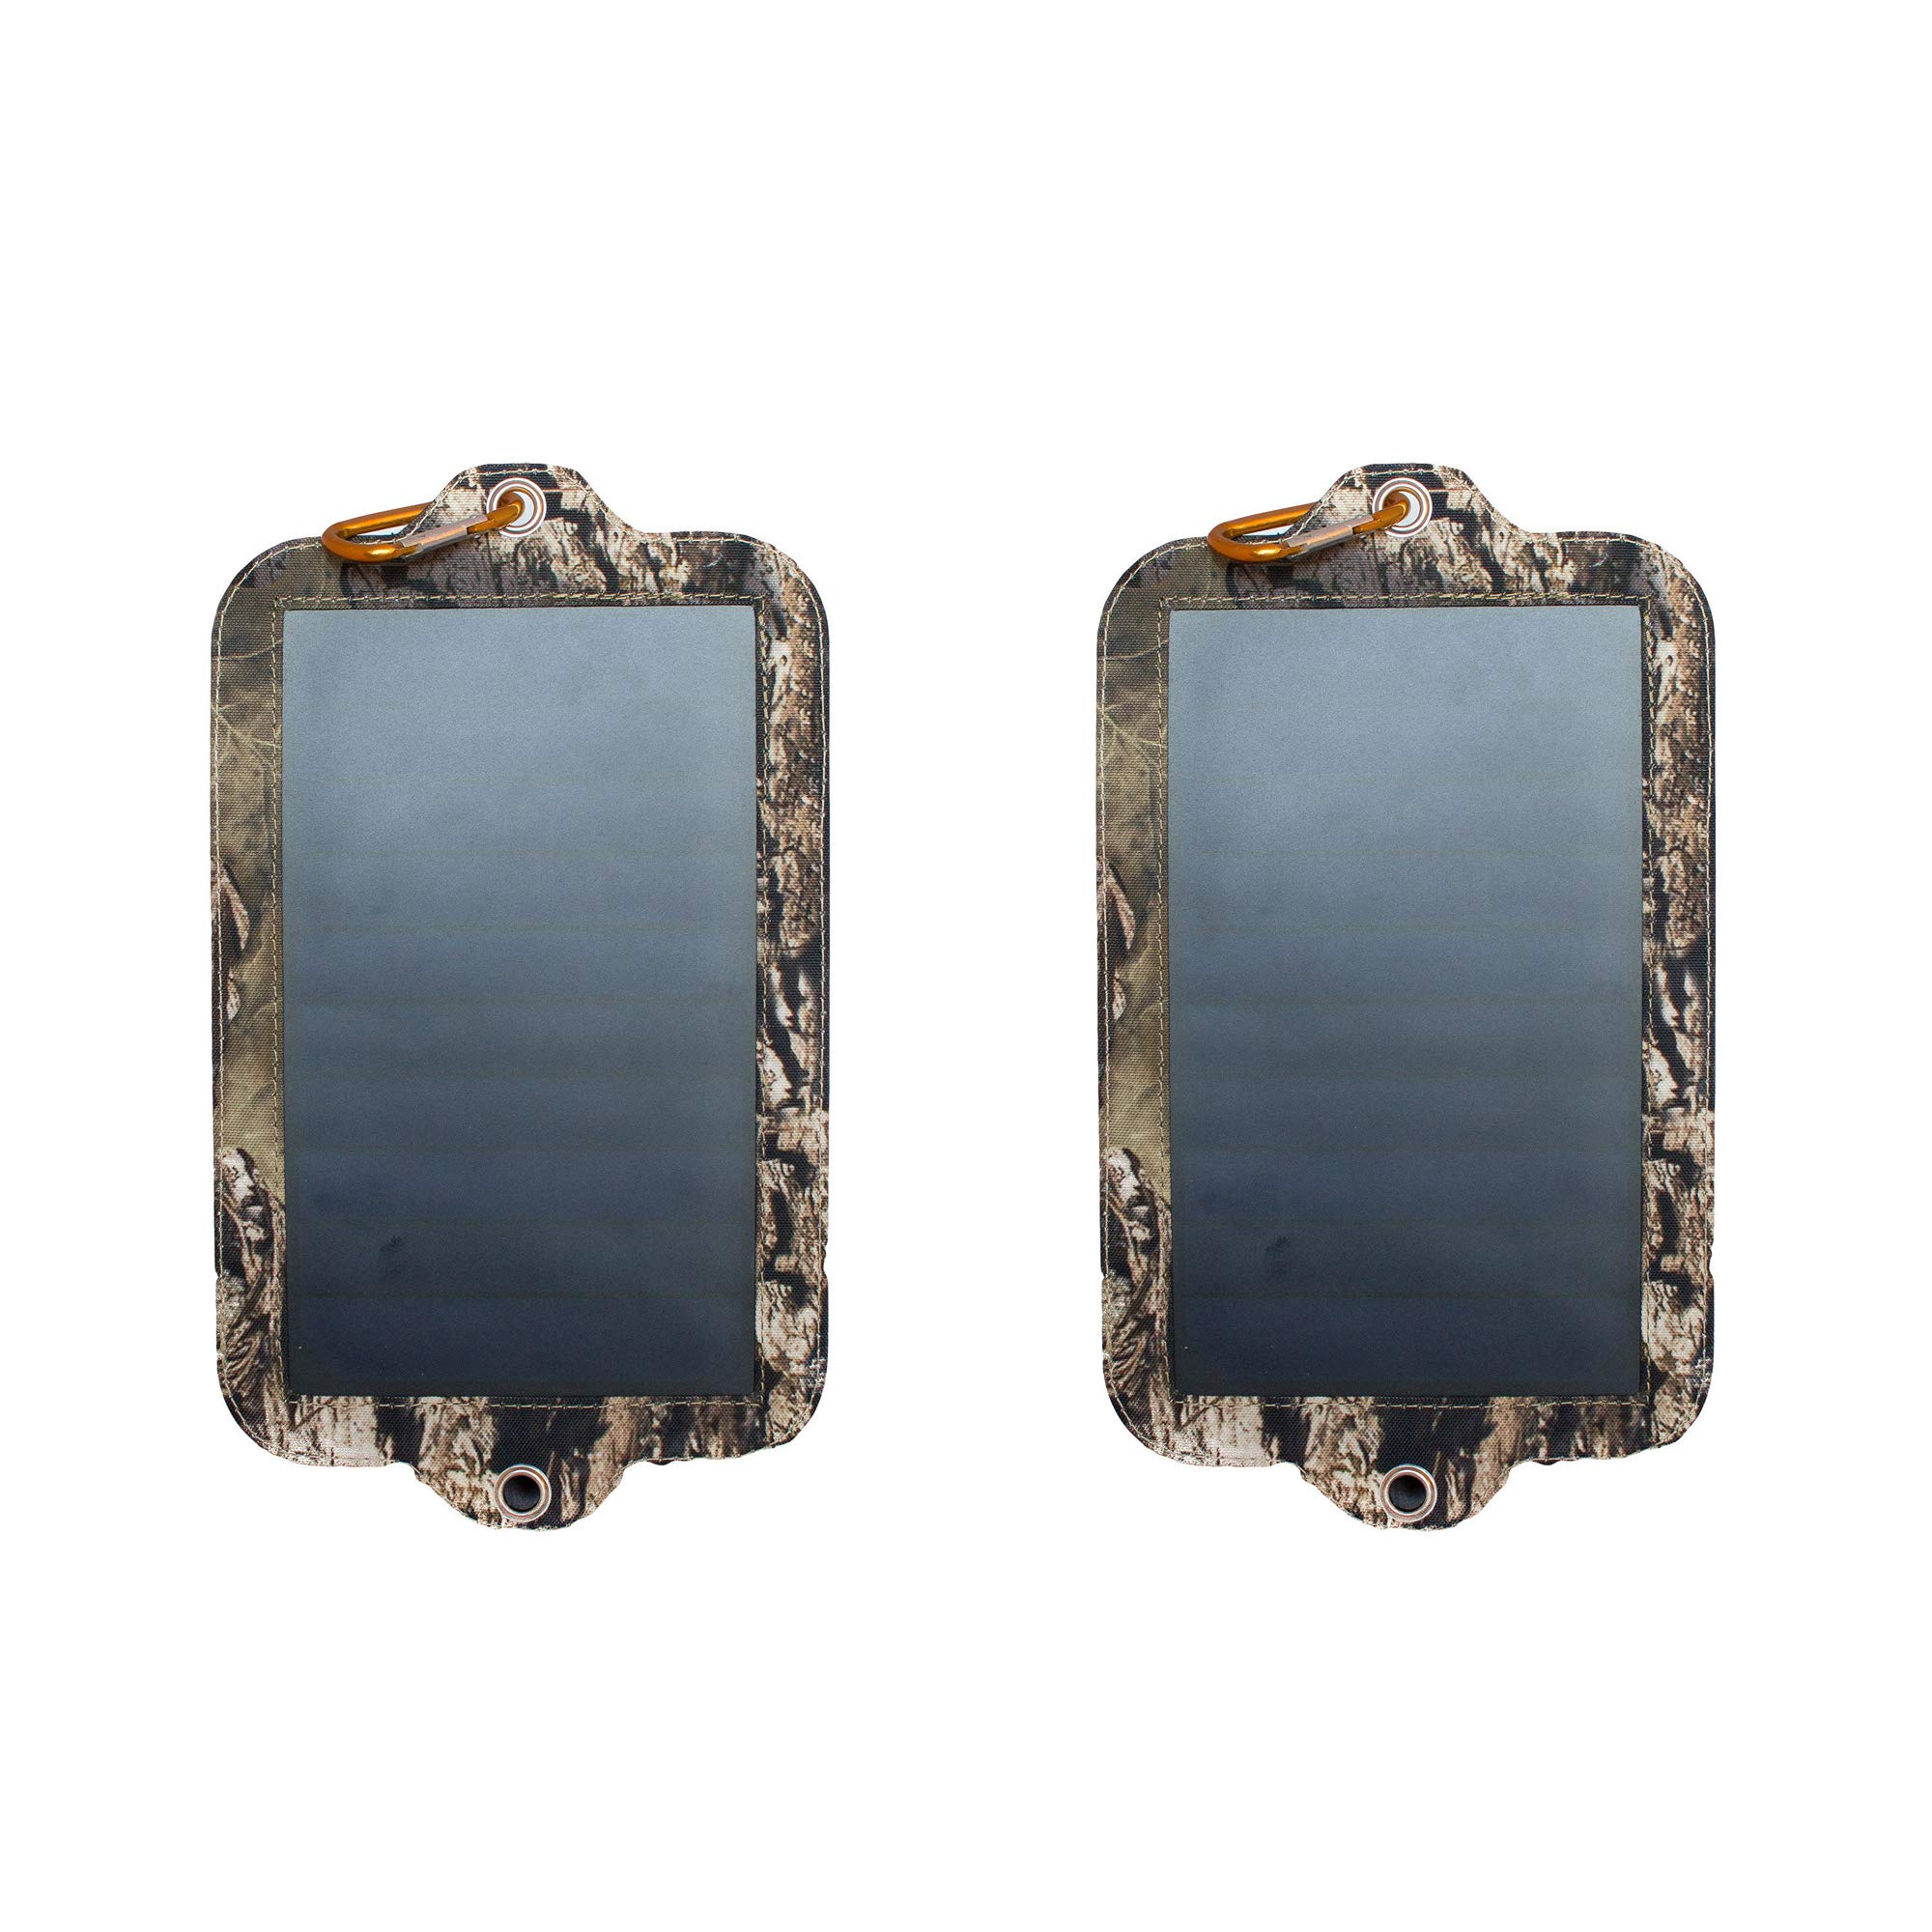 Covert Game Trail Camera Battery Replacement Solar Power Panel Charger (2 Pack) by Covert